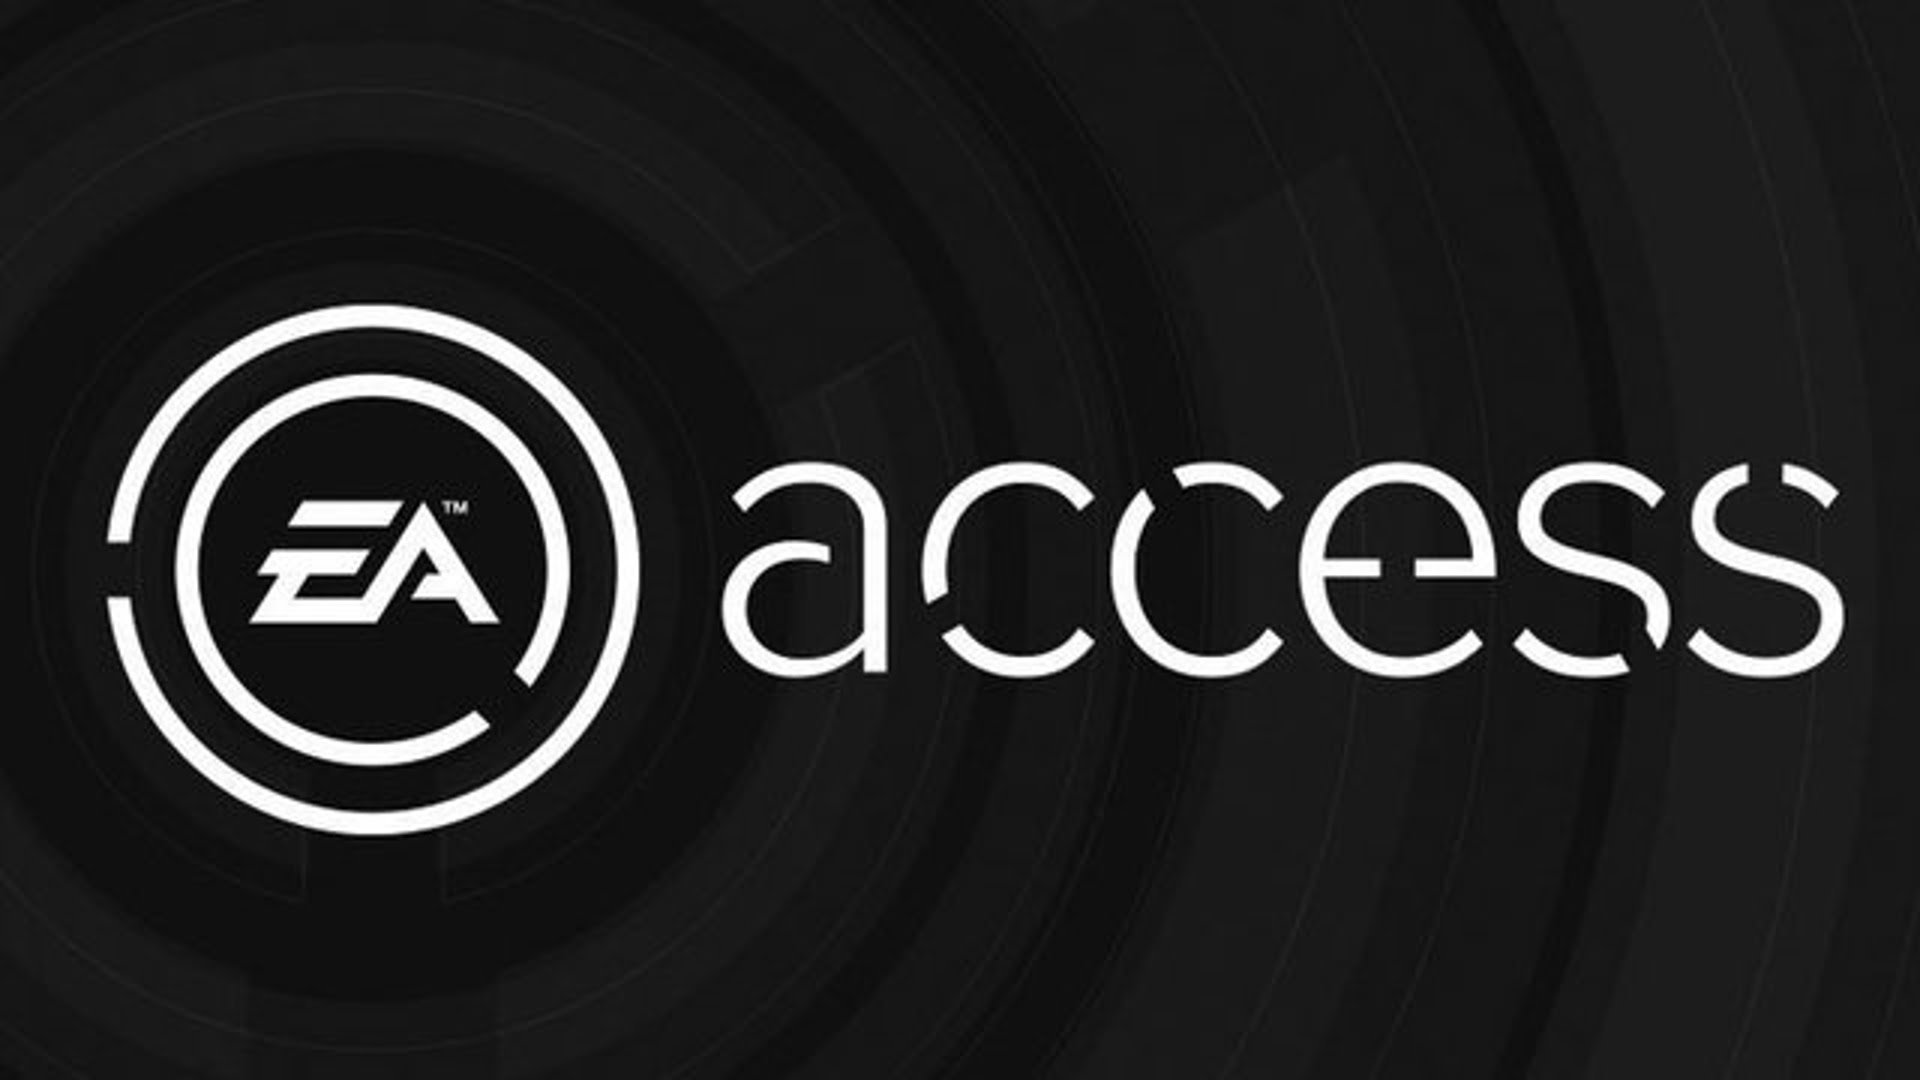 EA Access Vault Will Be Free For Xbox Live Gold Members